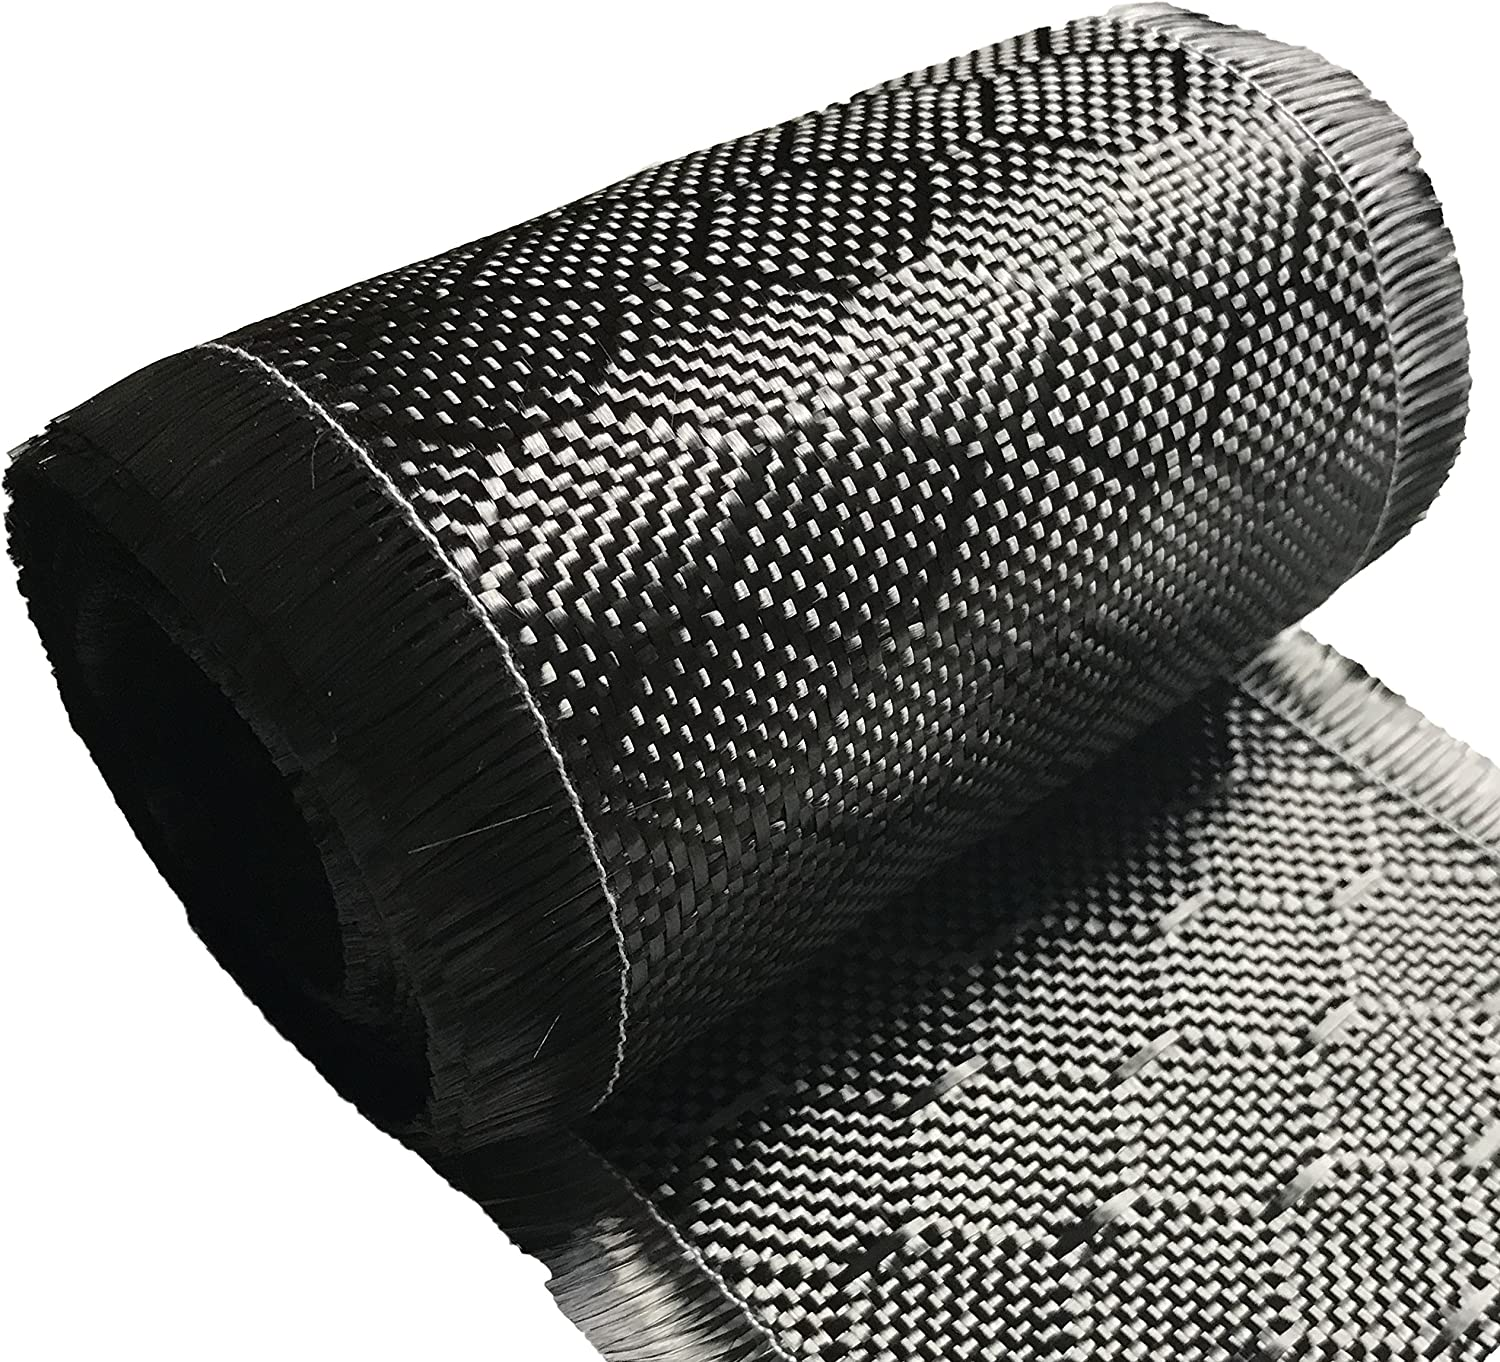 4 in x 5 FT 220g-Black Bee Hive CARBON FIBER FABRIC-2x2 Twill WEAVE-3K